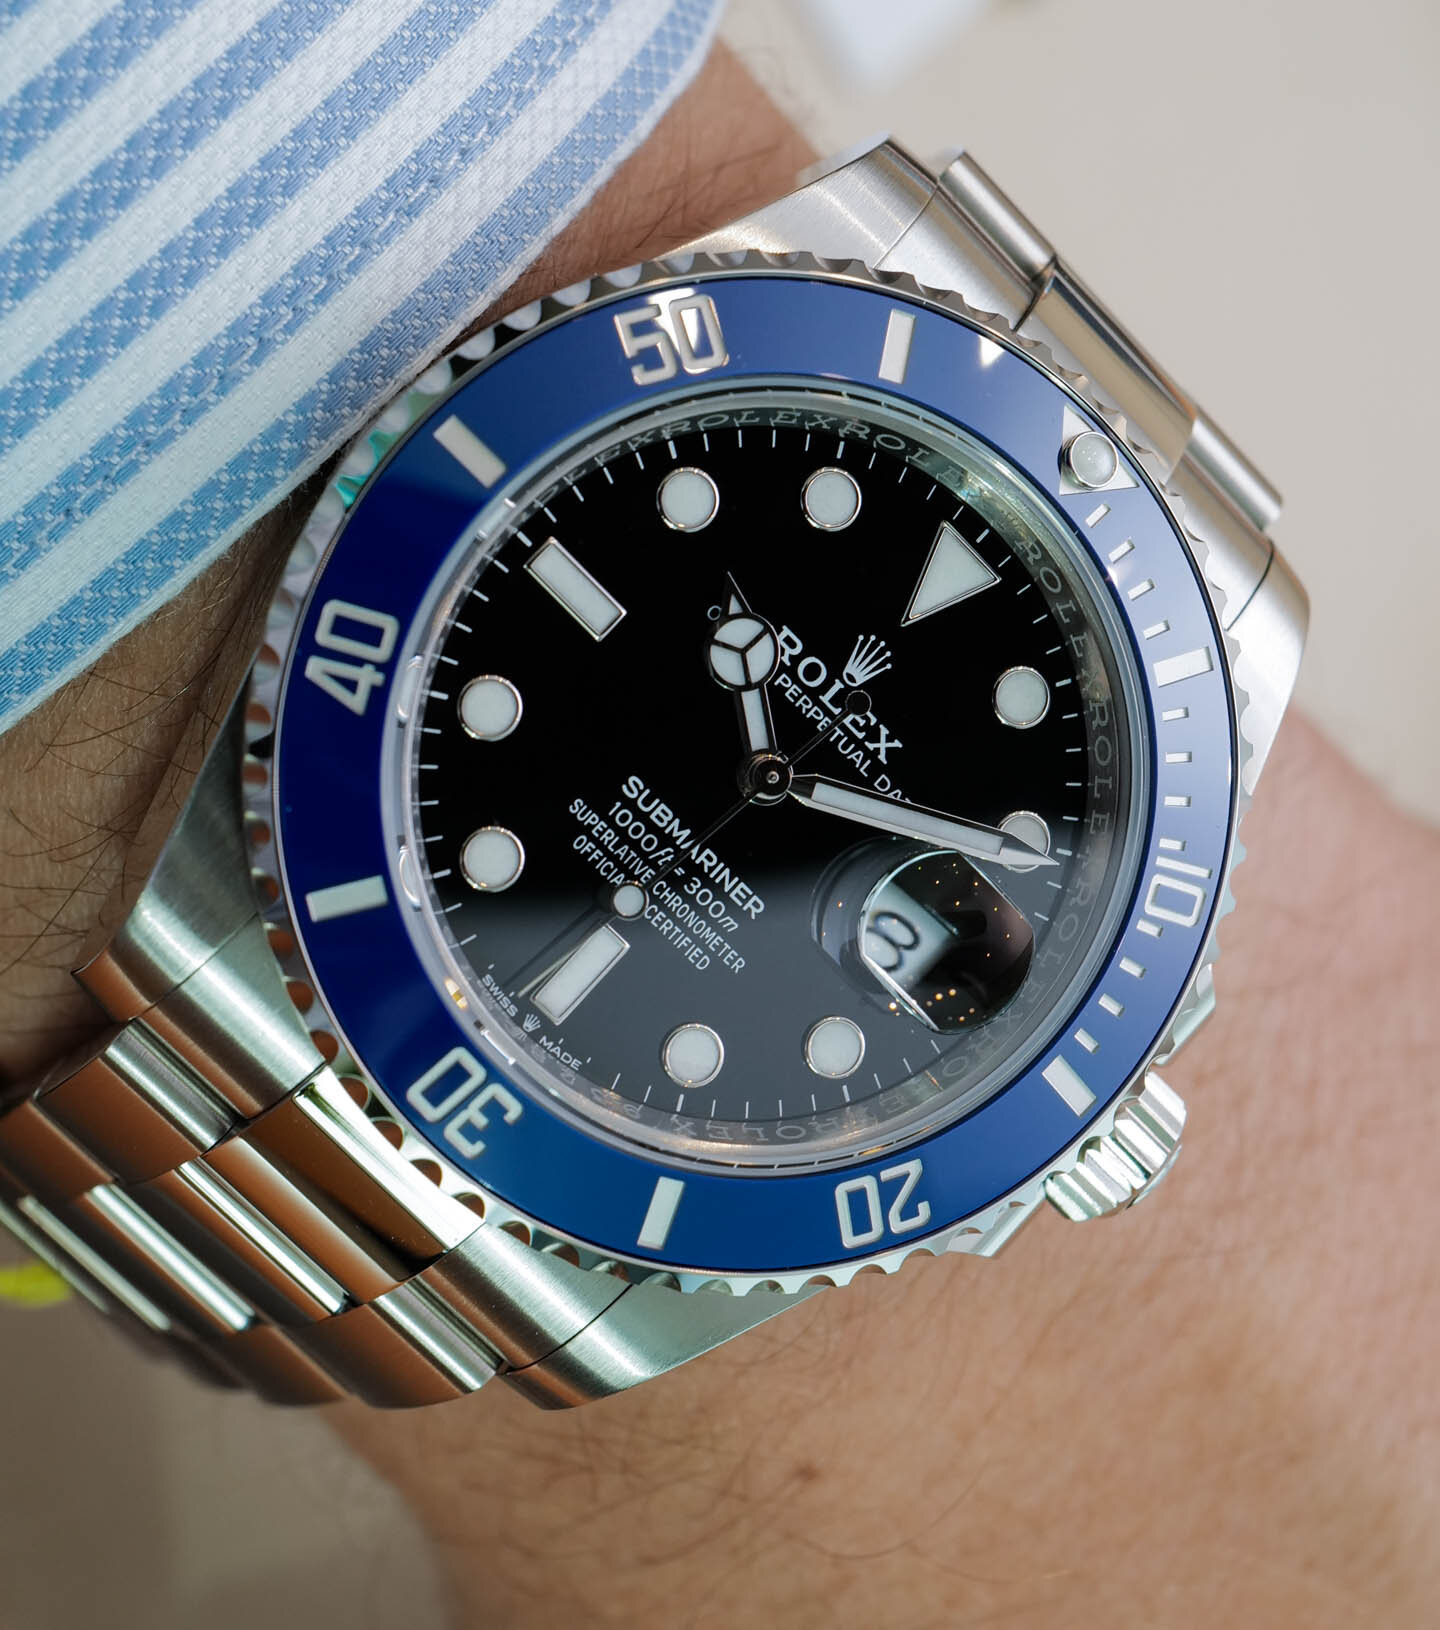 Rolex Submariner Date 126619LB Best Place to Buy Replica Rolex Watches Perfect Rolex